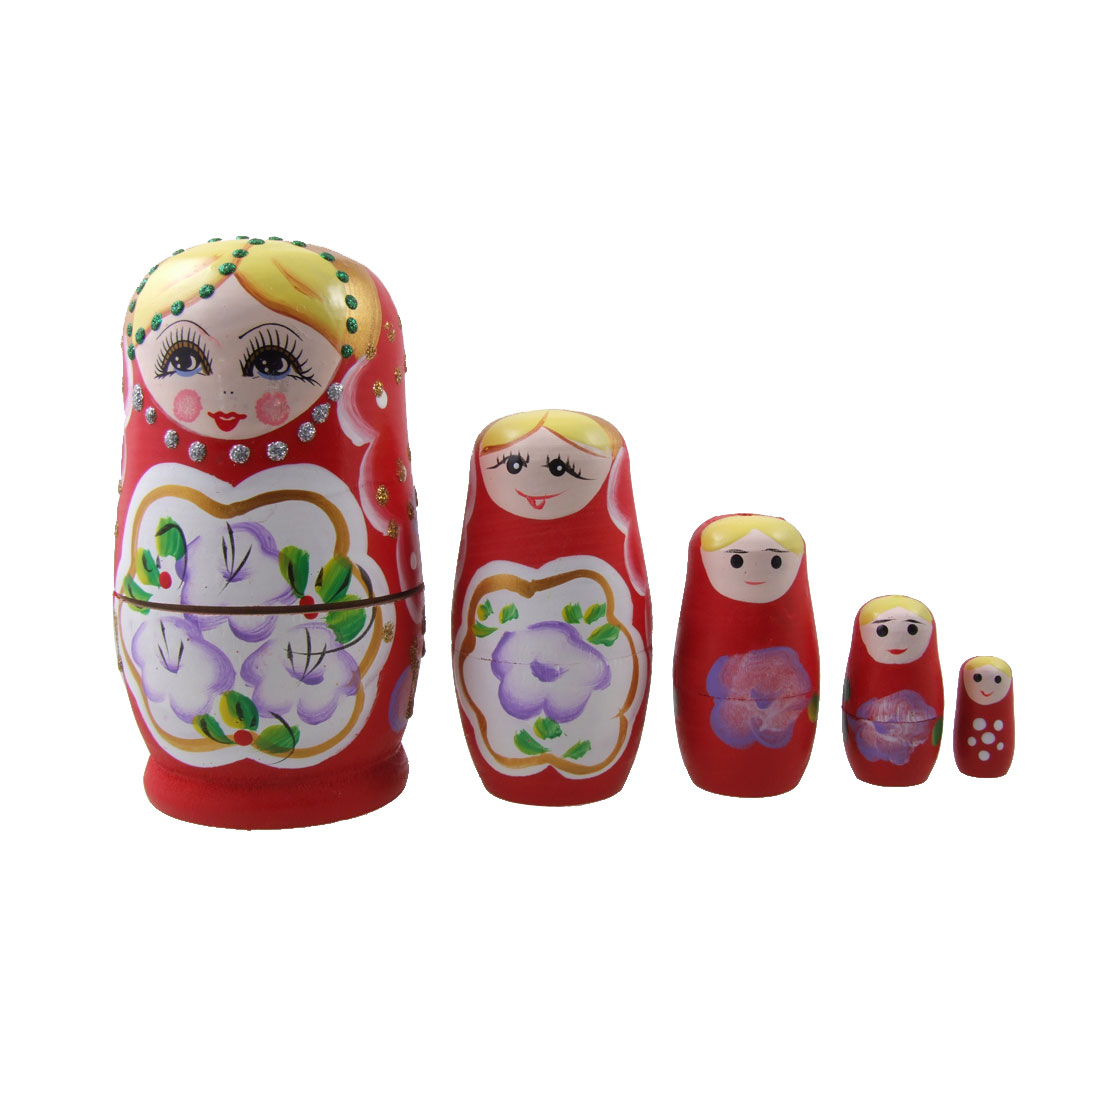 5 in 1 Wooden Russian Dolls Smile Girl Red Doll Set Toy